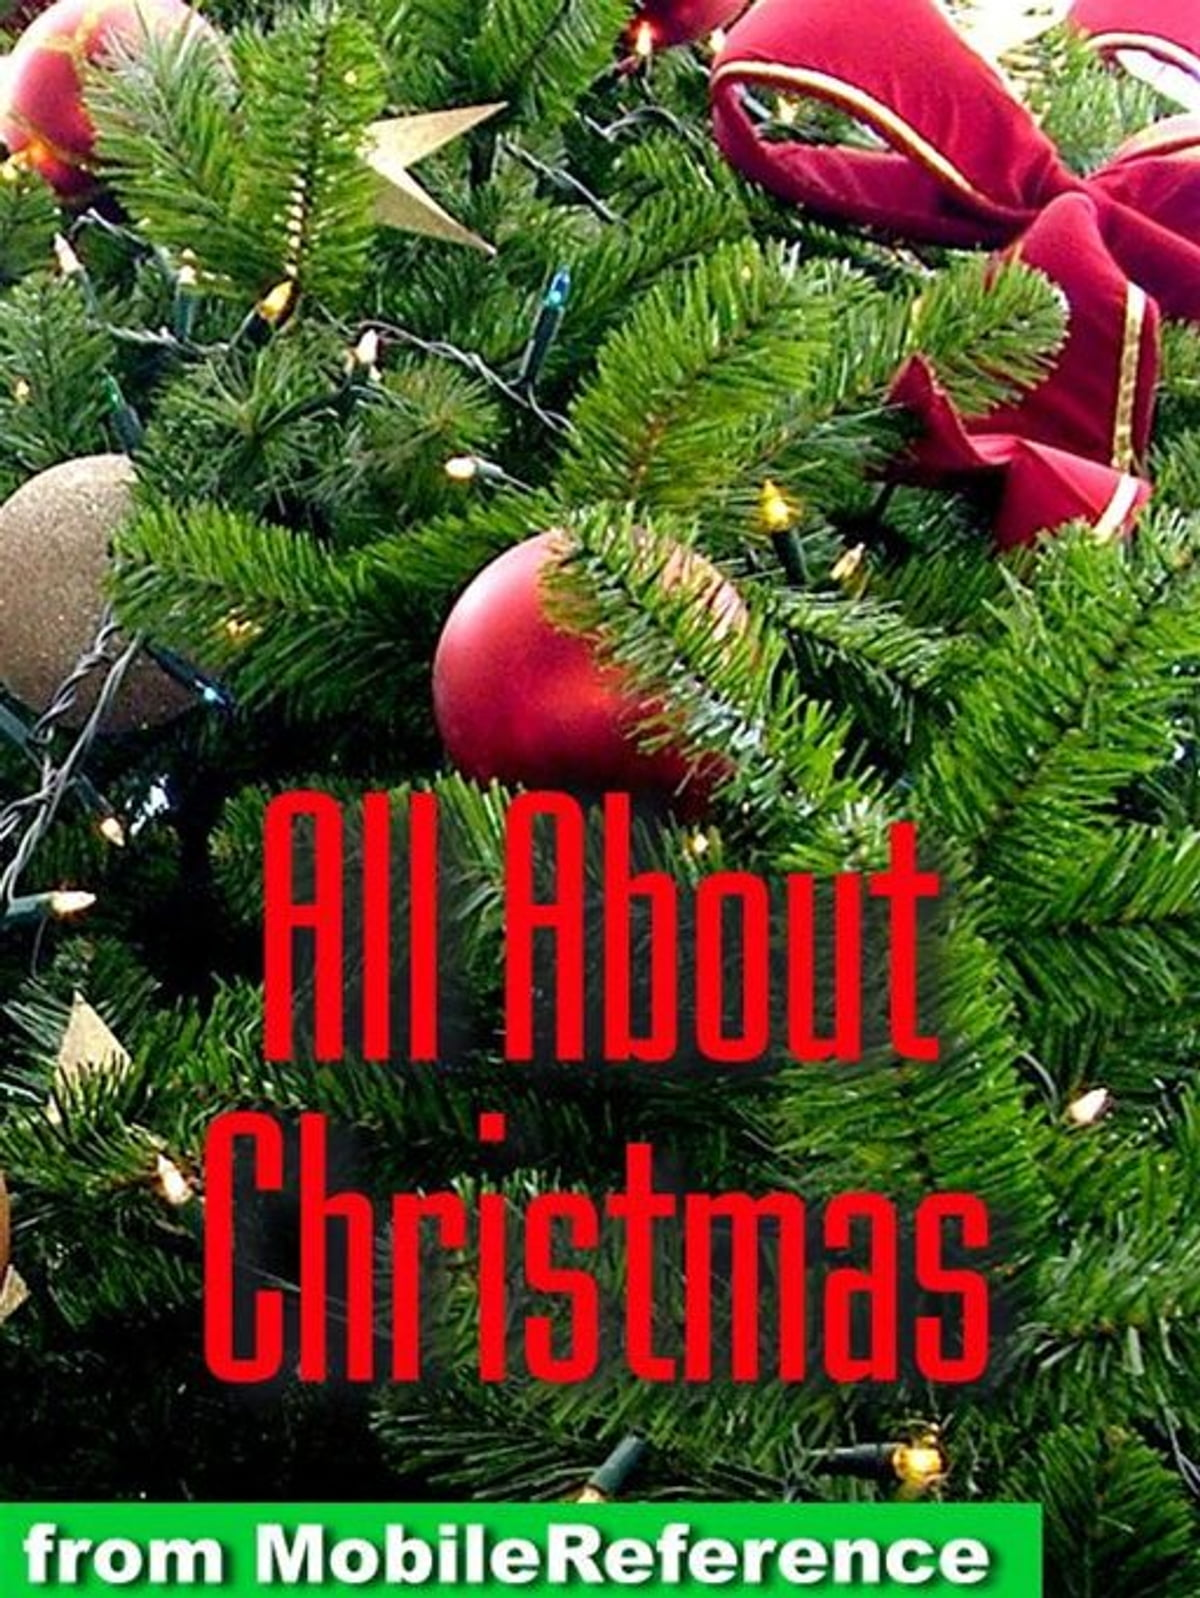 All About Christmas Eve.All About Christmas History Traditions Carols Stories Recipies More Mobi Reference Ebook By Mobilereference Rakuten Kobo